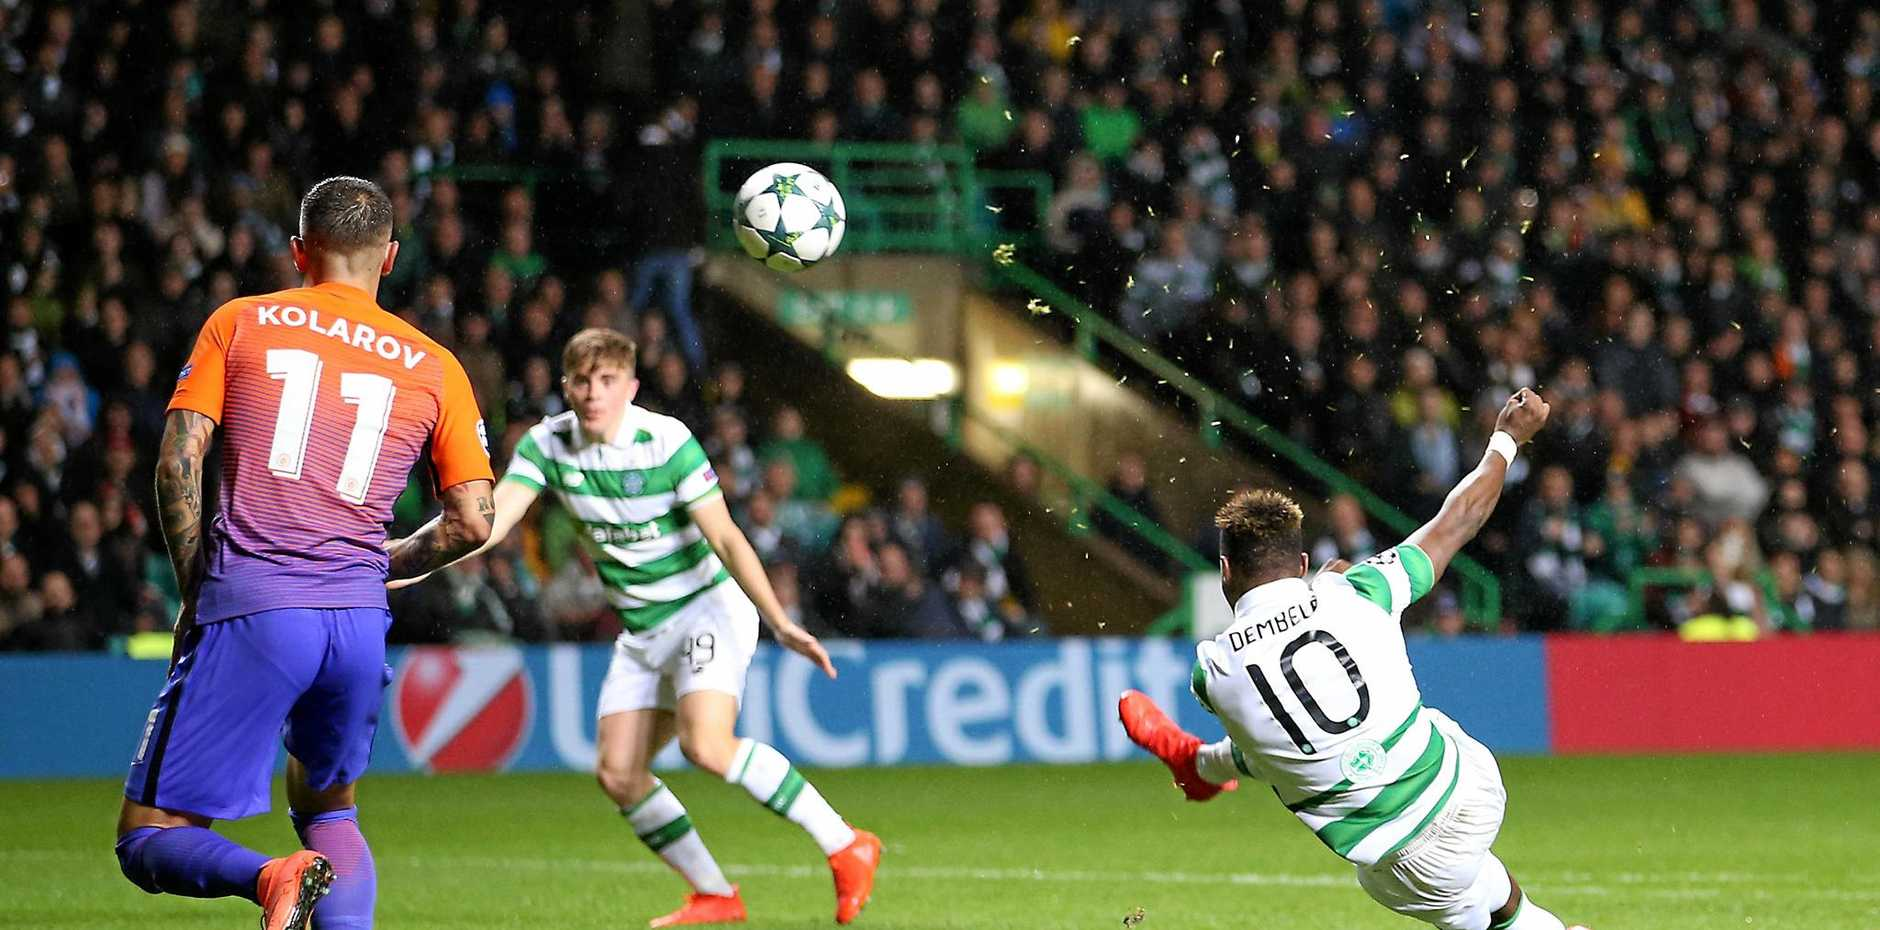 Celtic's Moussa Dembele cores his side's third goal during the Champions League Group C soccer match against Manchester City at Celtic Park in Glasgow.